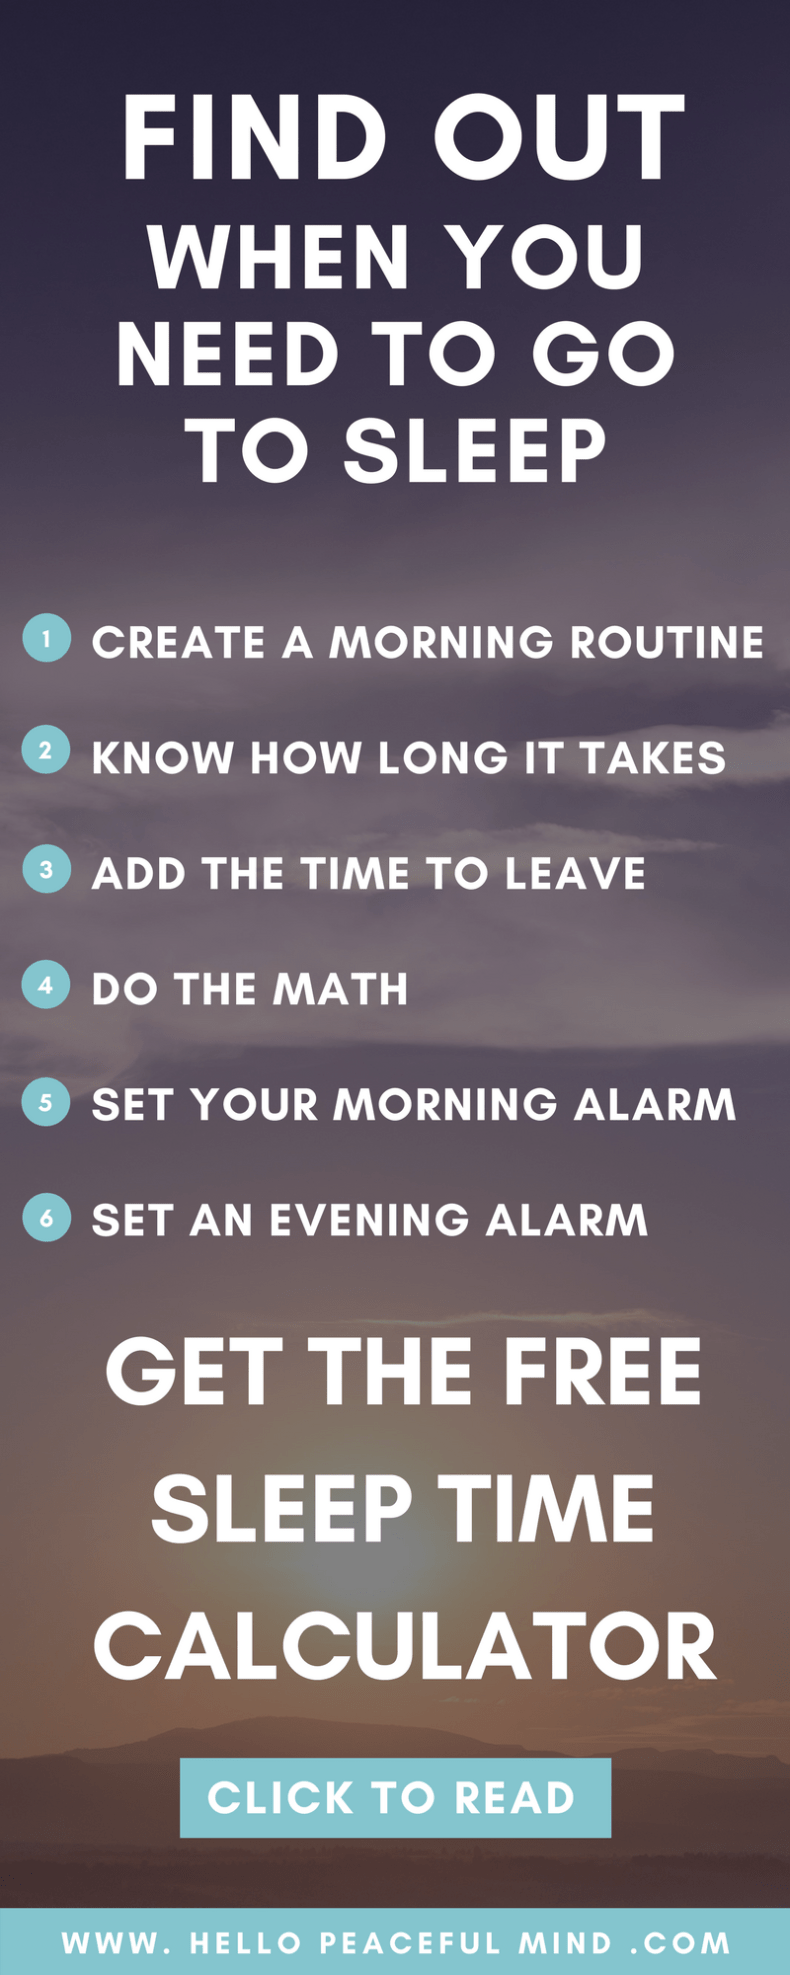 Easily find out when to sleep with the FREE calculator to create your morning routine, know how long it takes, when to wake up and to go to bed!